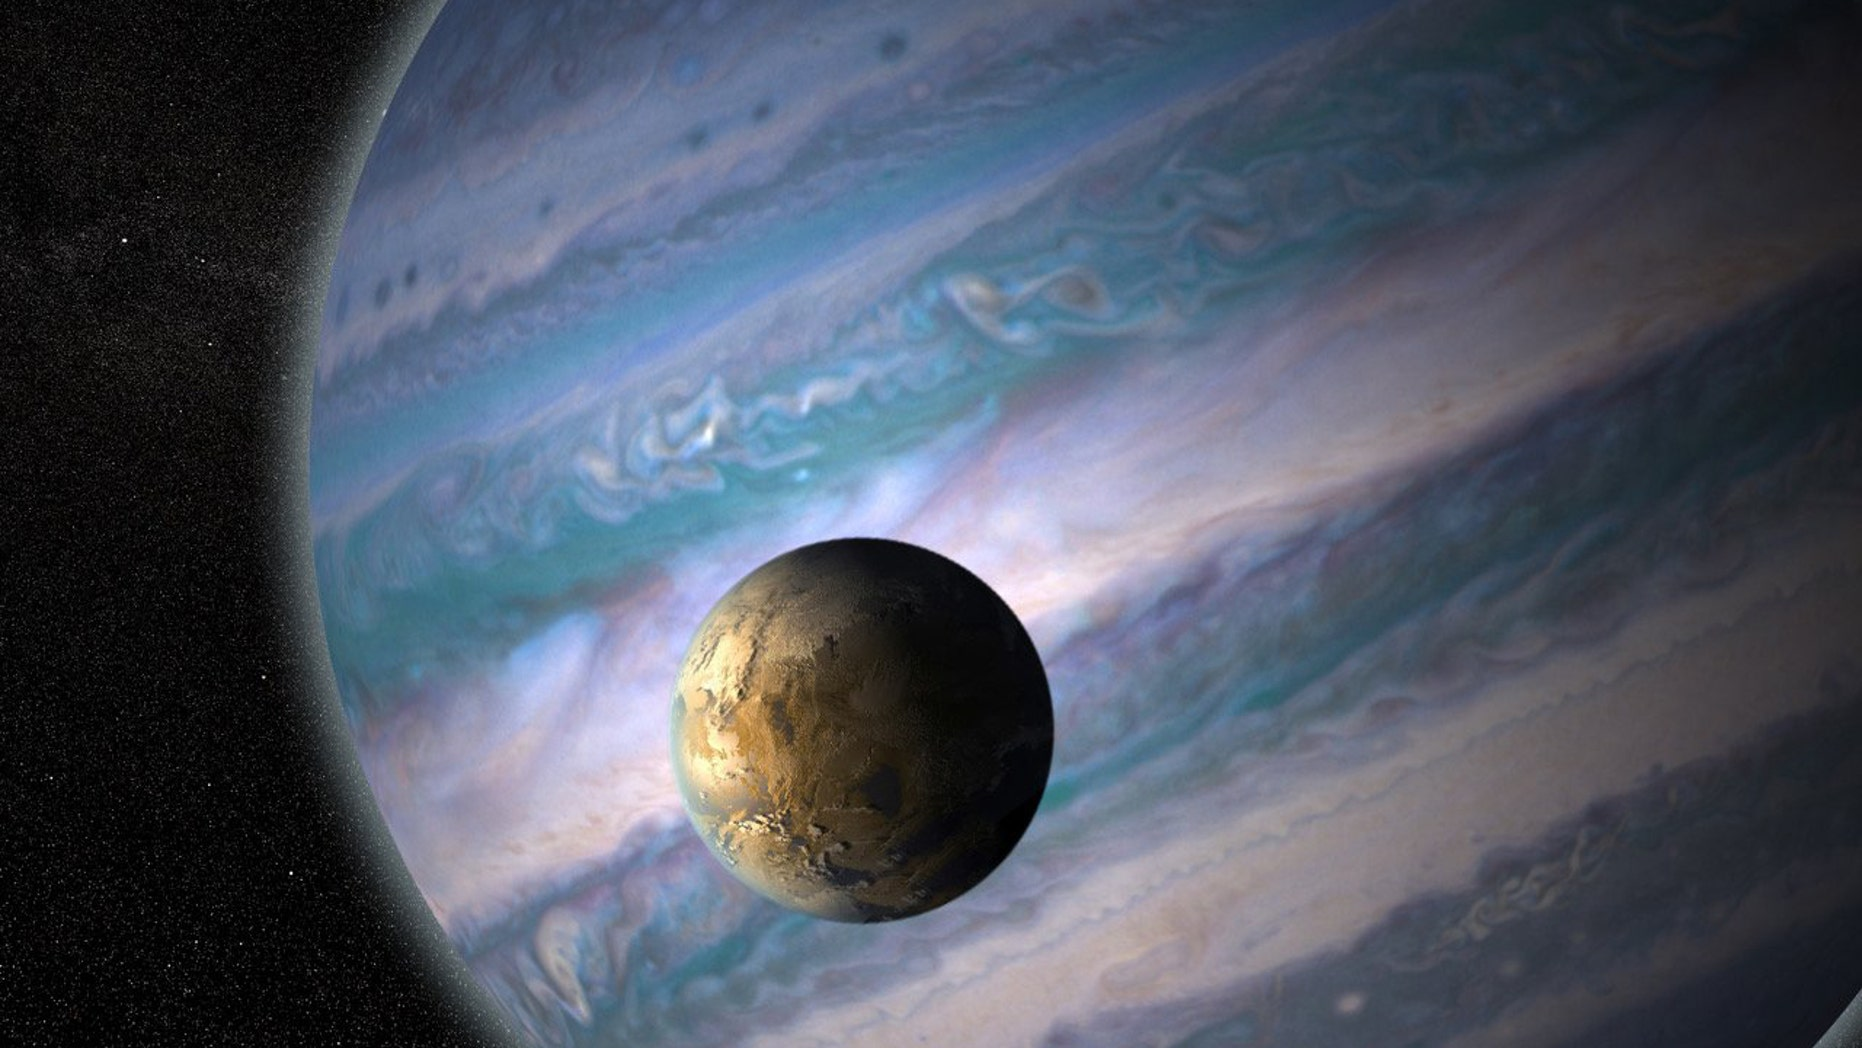 An artist's painting of a potentially habitable exomoon orbiting a hulk universe in a apart solar system.